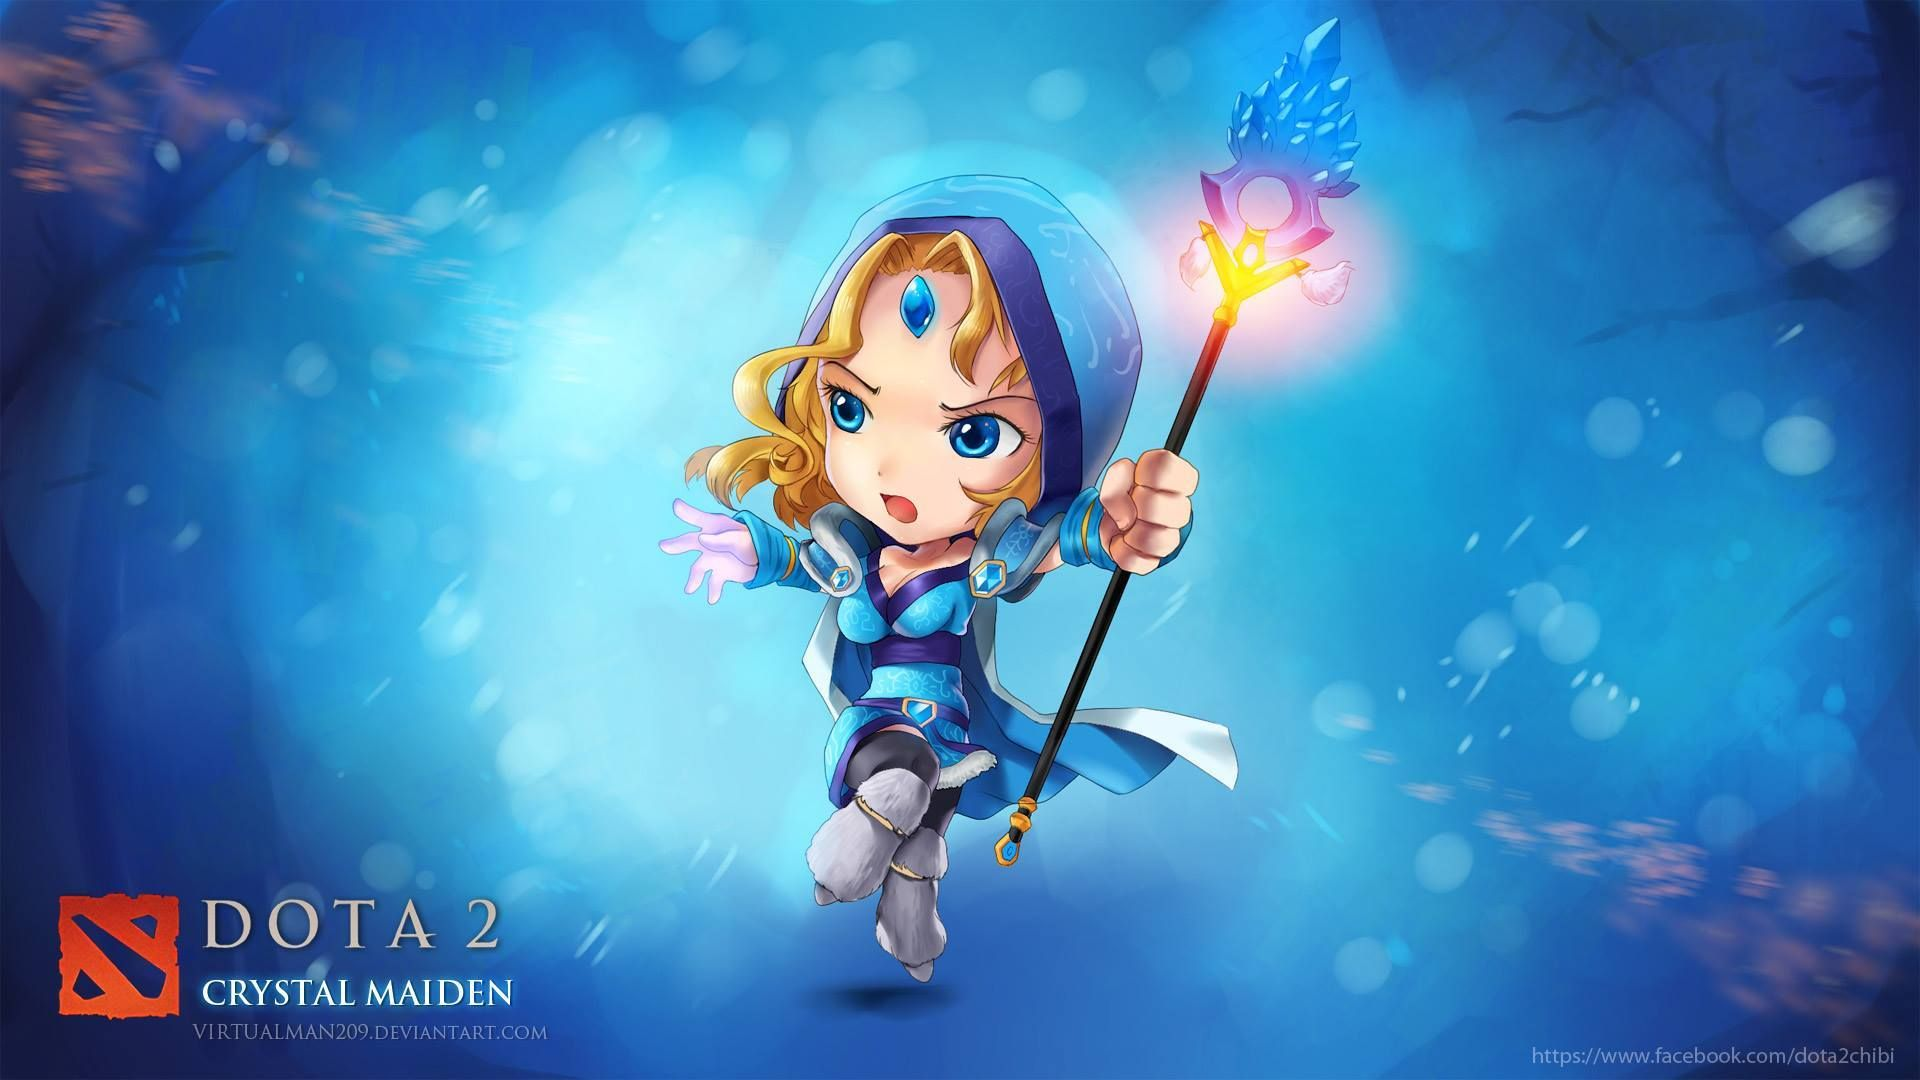 Wallpaper Dota 2 Crystal Maiden Chibi Dota Pinterest Dota 2